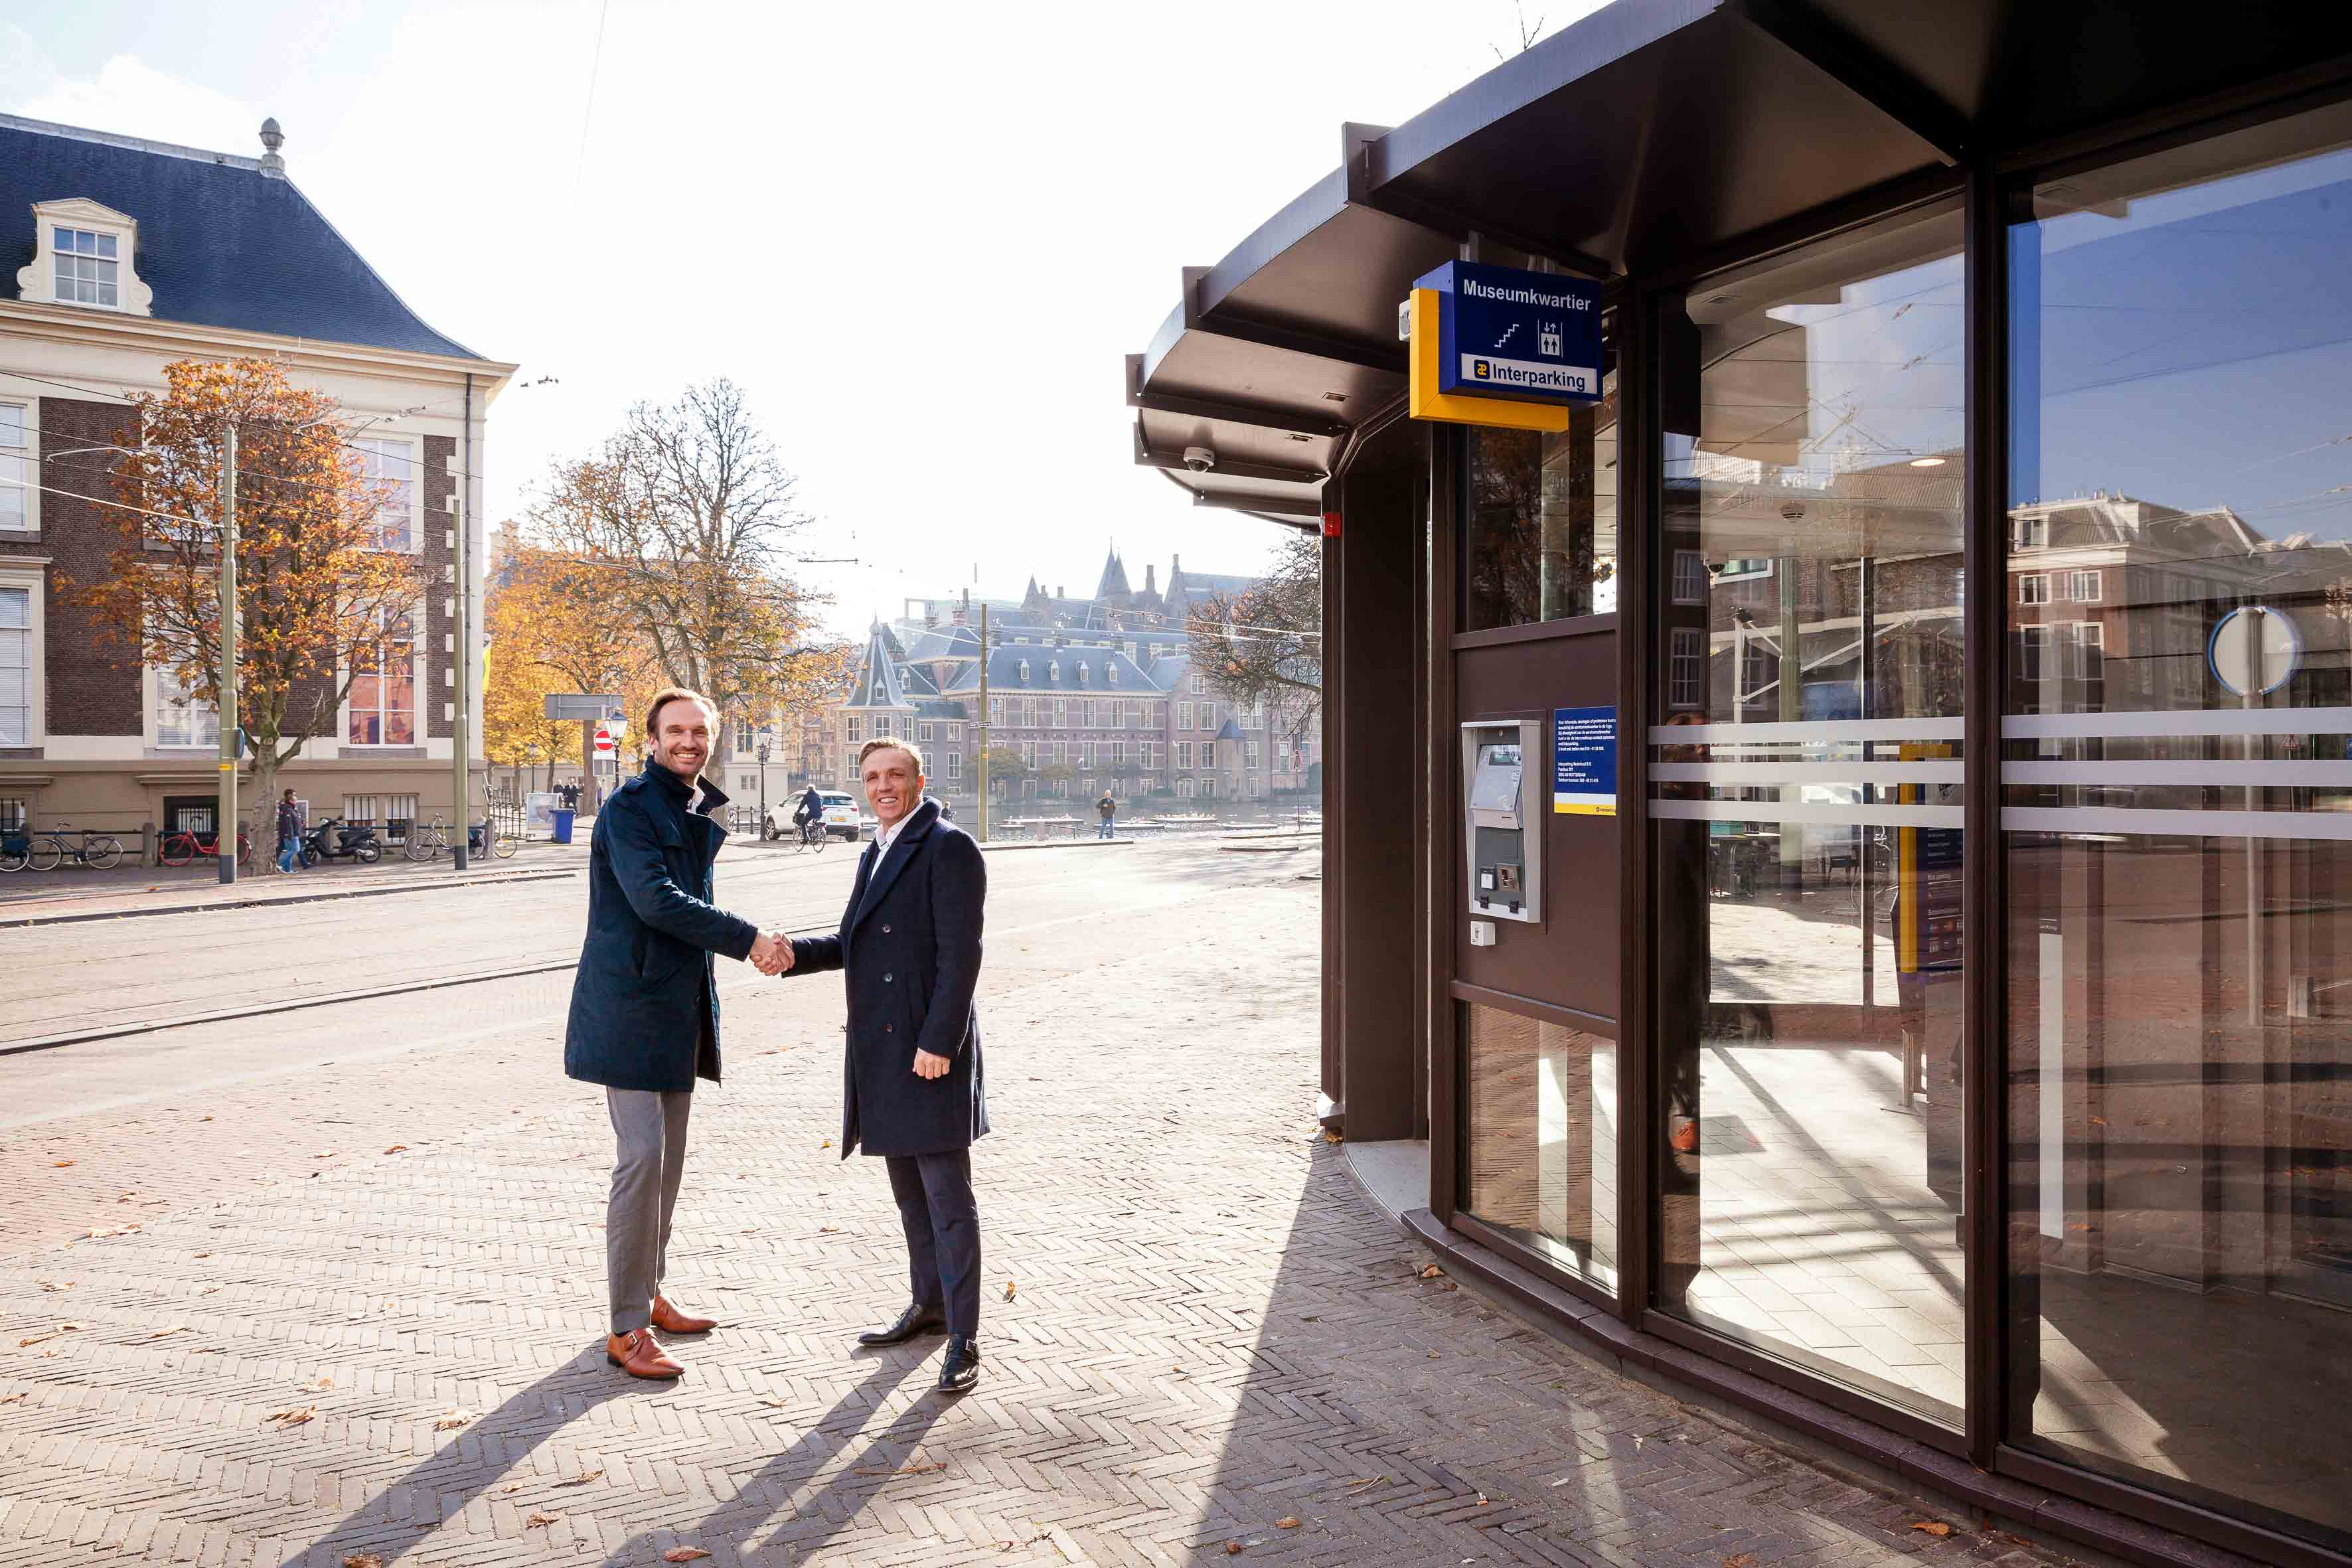 Interparking contract verlengd voor Provada